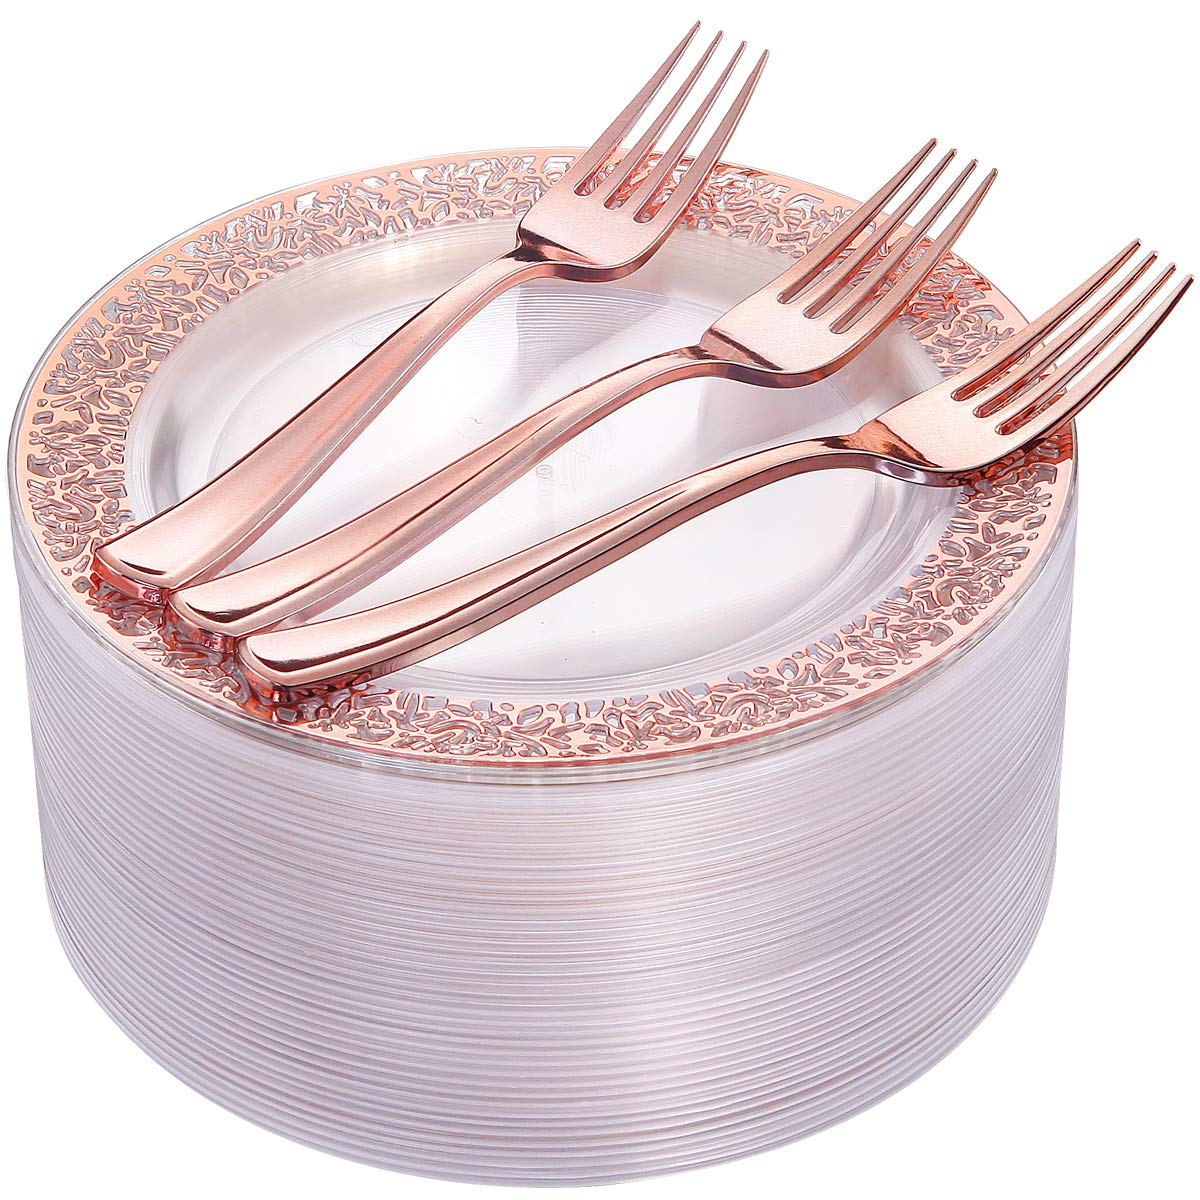 72 Pieces Rose Gold Dessert Plates 7.5'' & 72 Pieces Disposable Forks 7.4'', Clear Lace Design Plastic Salad Plates, BPA Free Appetizer Plates for all Holidays & Occasions by I00000